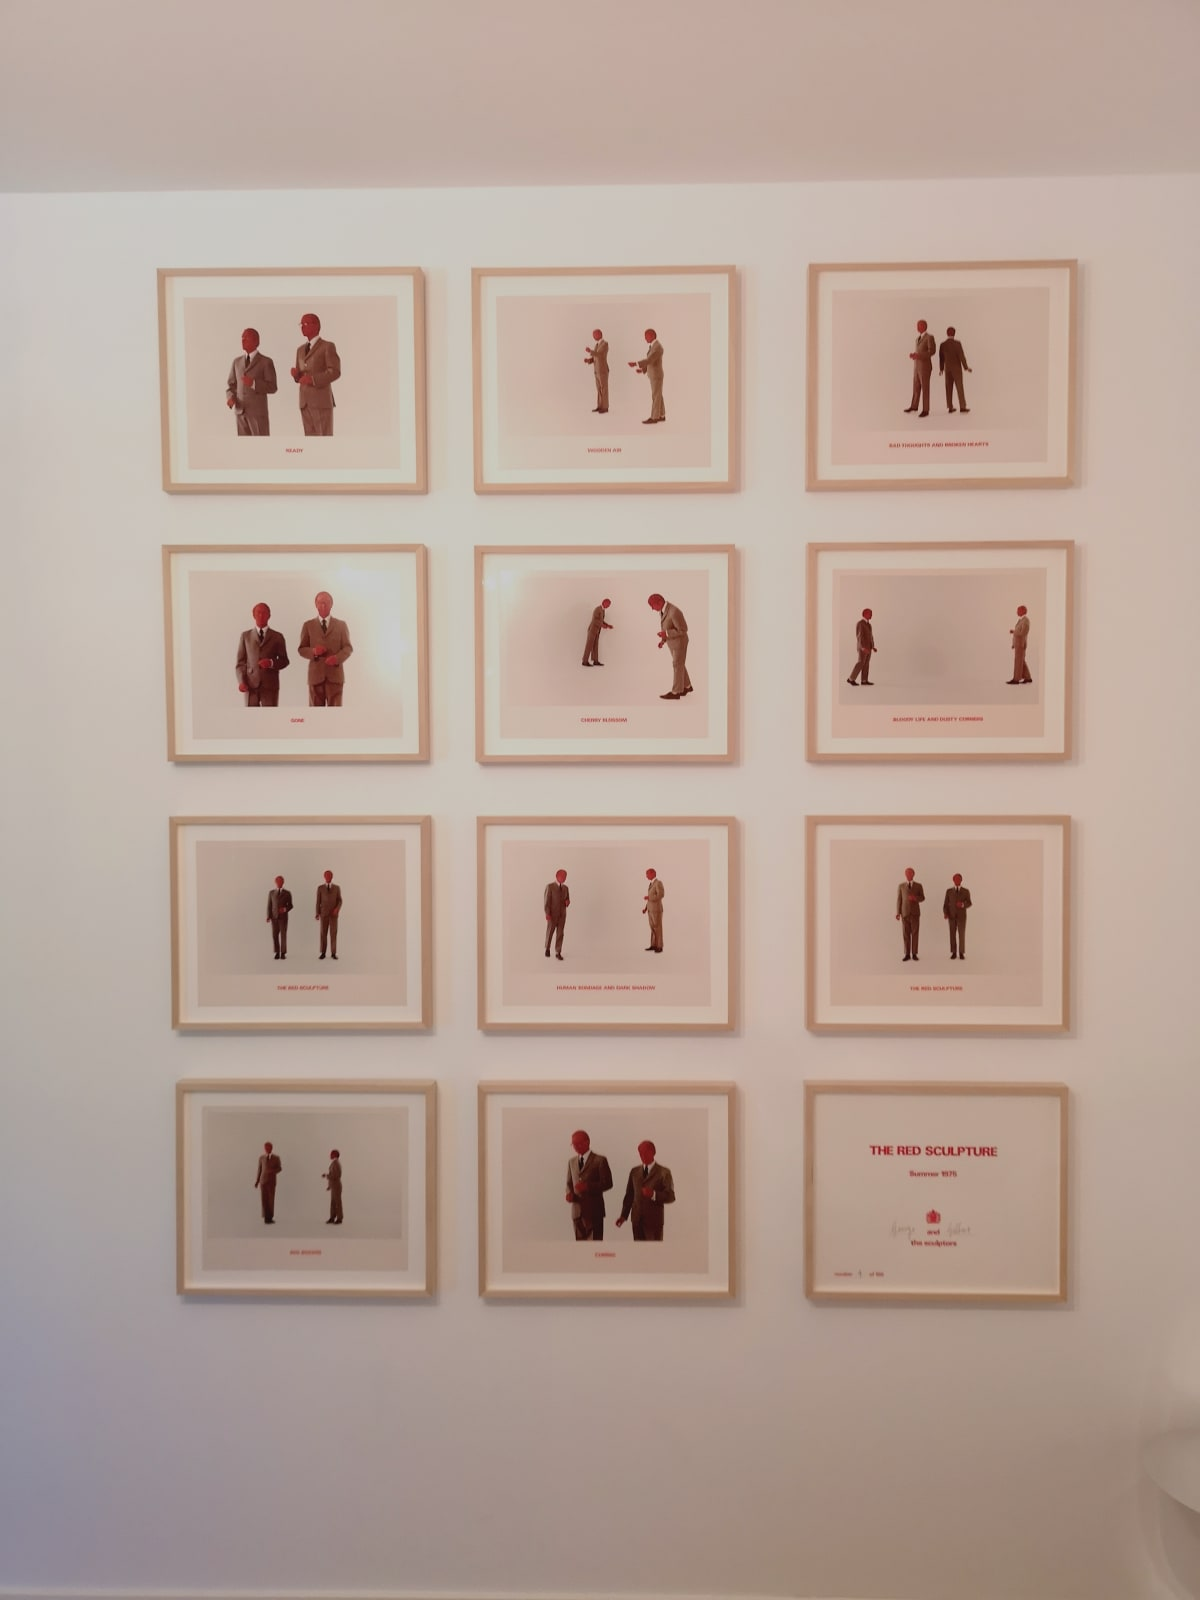 GILBERT & GEORGE, The Red Sculpture, 1975